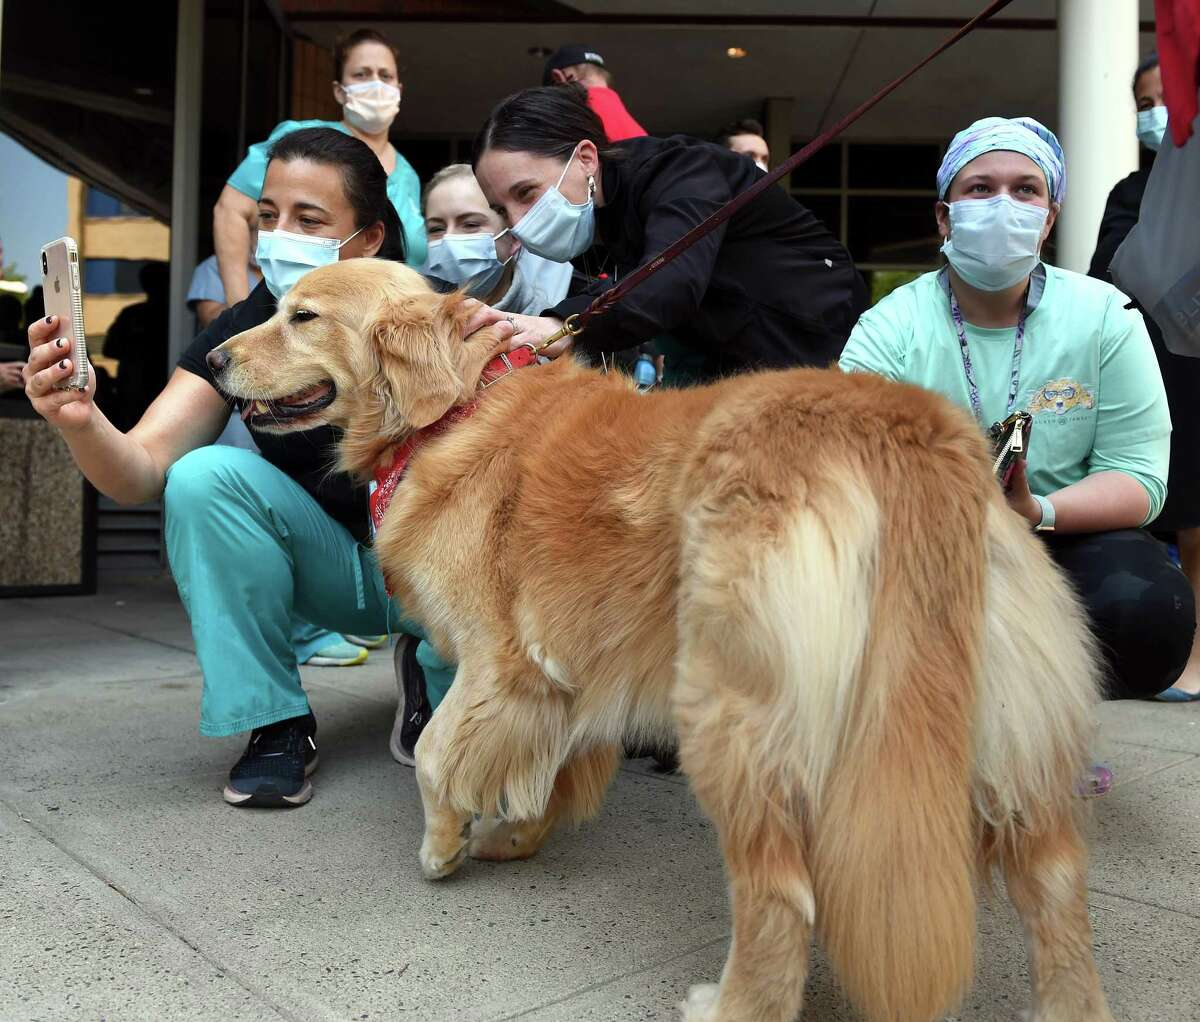 Tania Taft (far left) takes a selfie with therapy dog Reissa, a golden retriever, during a therapy dog parade at Yale New Haven Hospital in New Haven on May 21, 2021. Reissa is owned by Pat Reid of North Branford.